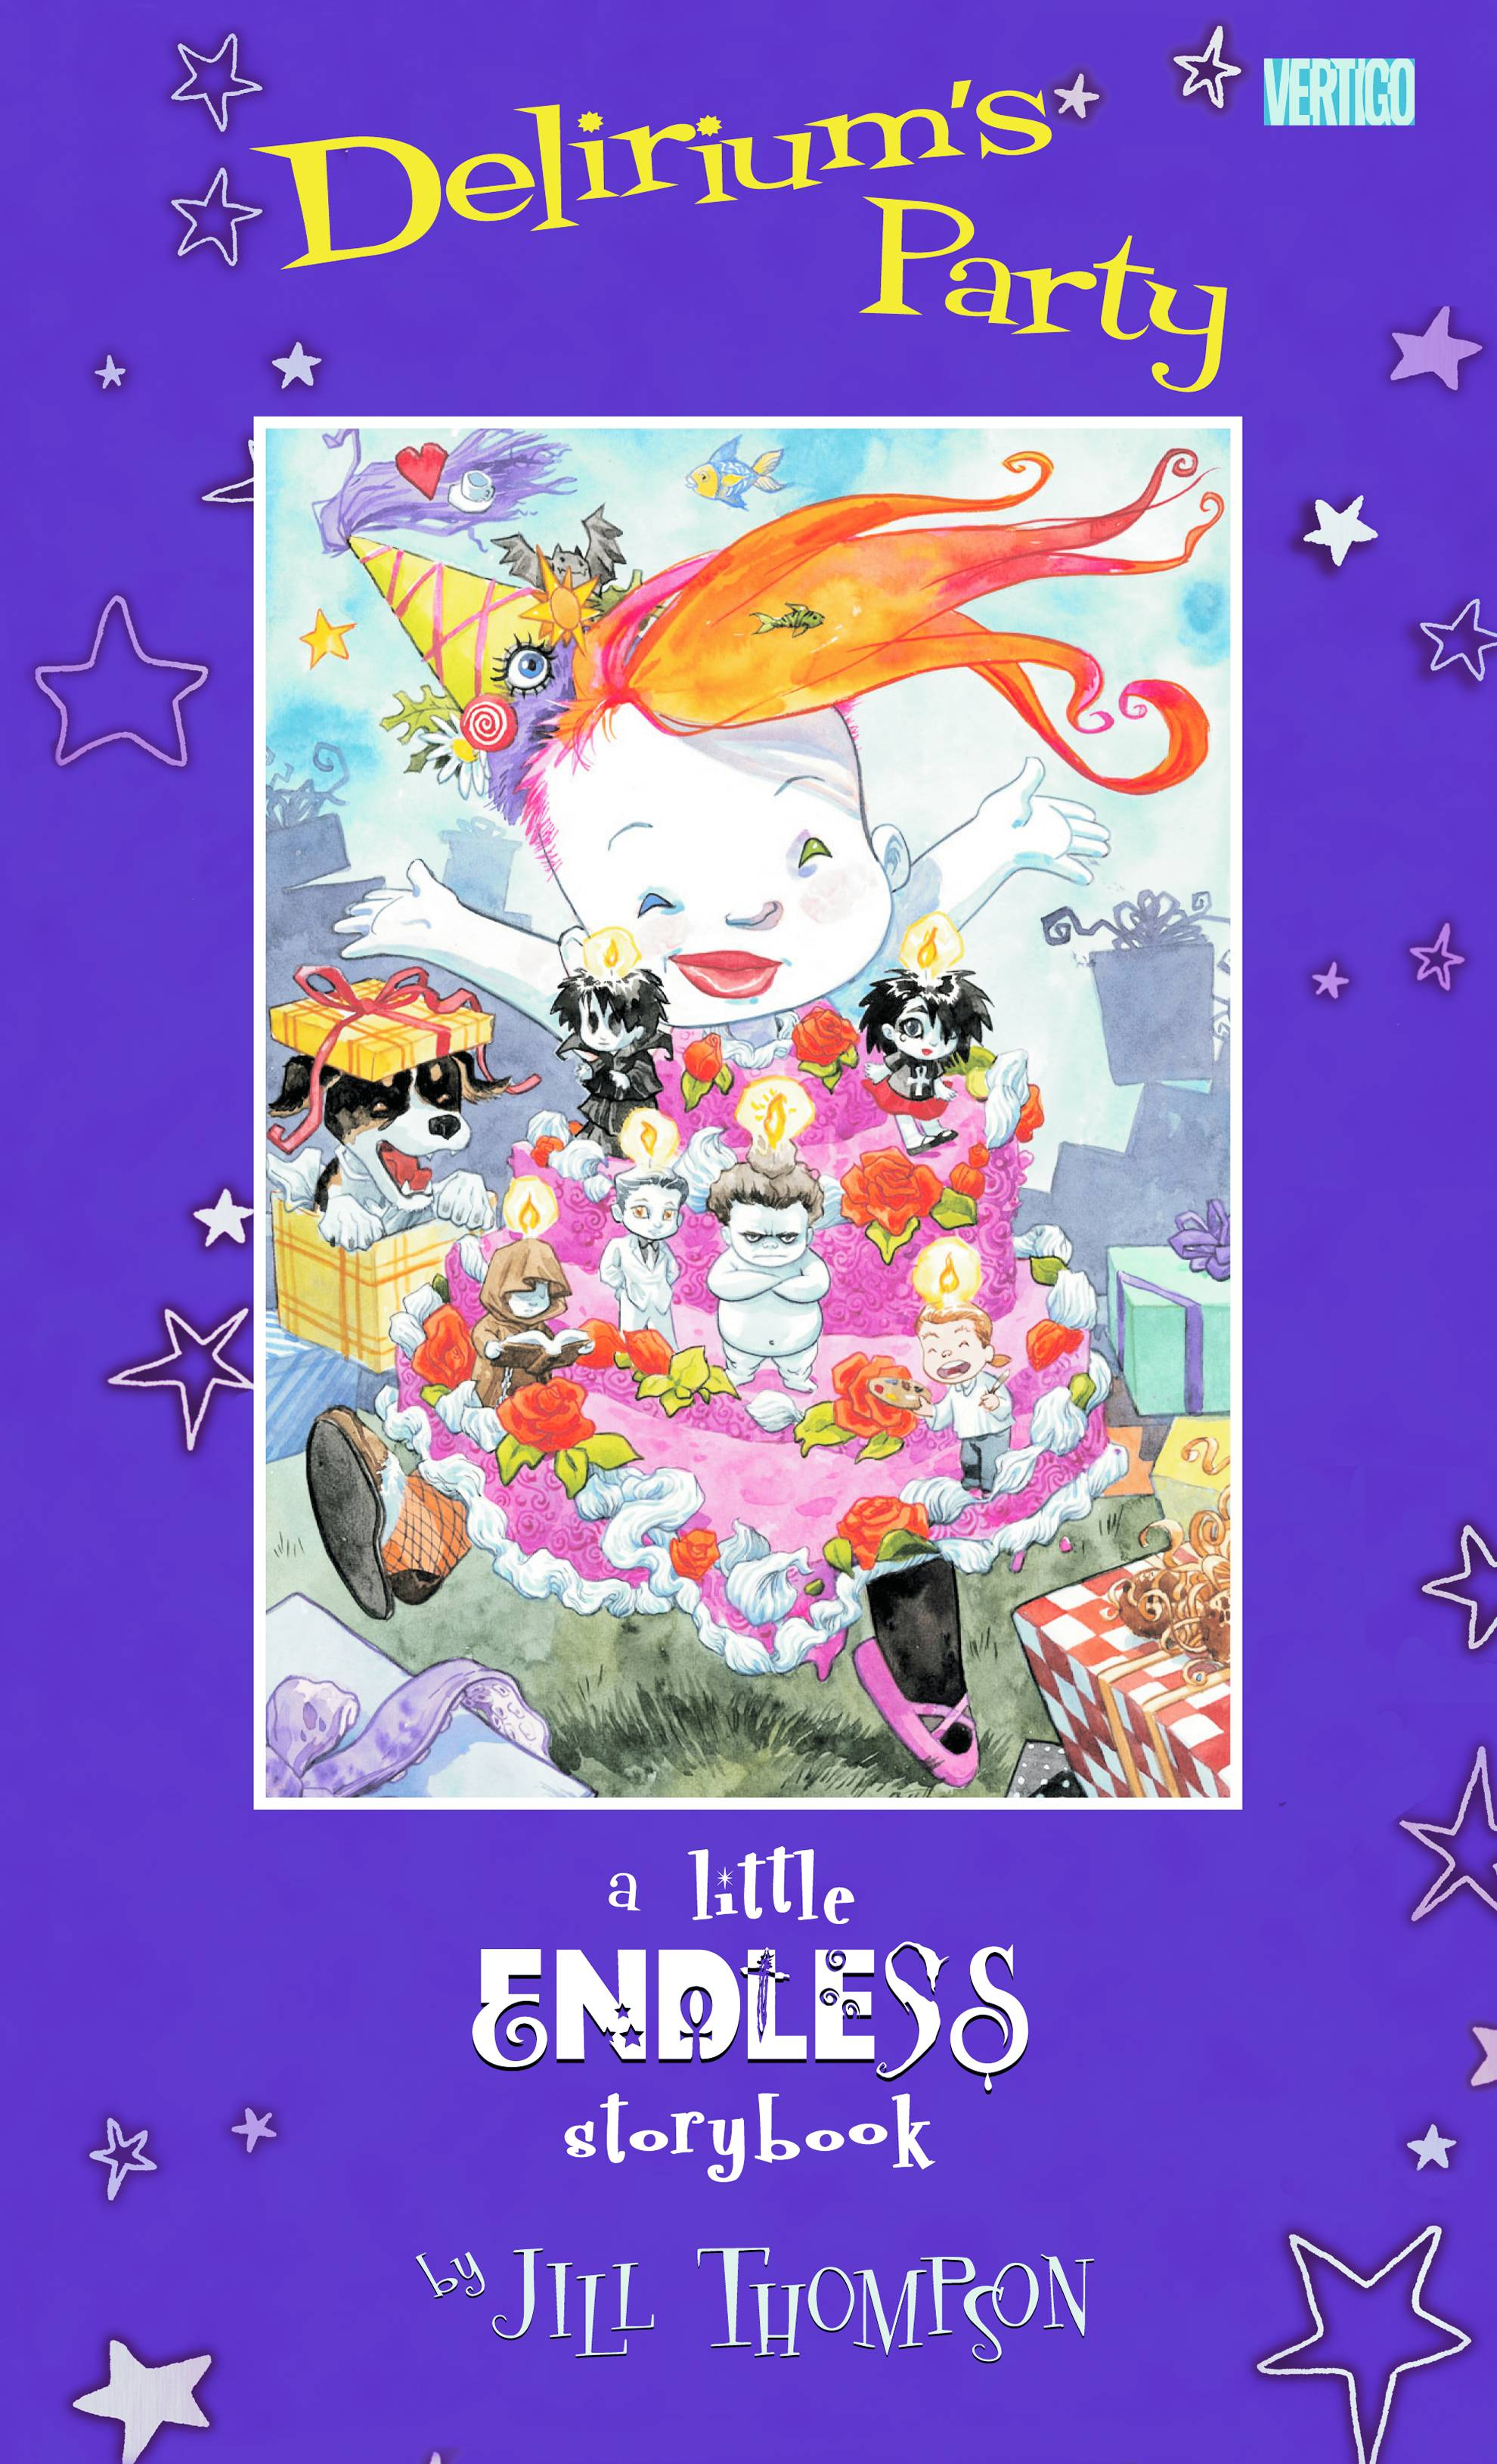 Little Endless Storybook: Delirium's Party HC